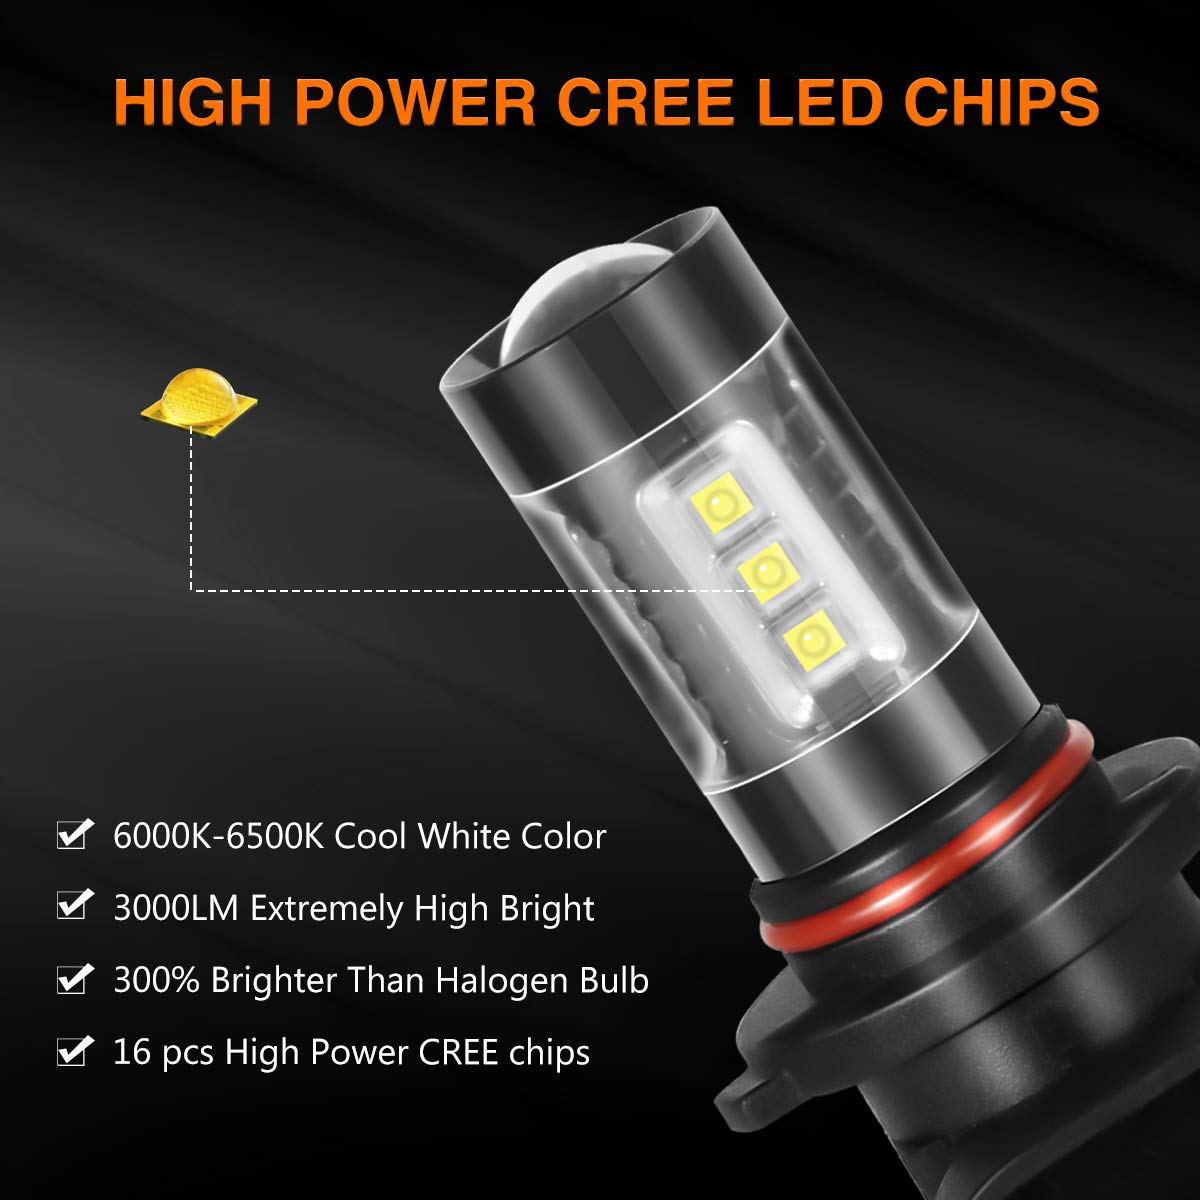 pack of 2 Cool white 6000 6500K AUTOBEAM H11 H8 Led Fog Light Bulb,H16 Led Fog Lamp High Power 24 CREE Chips